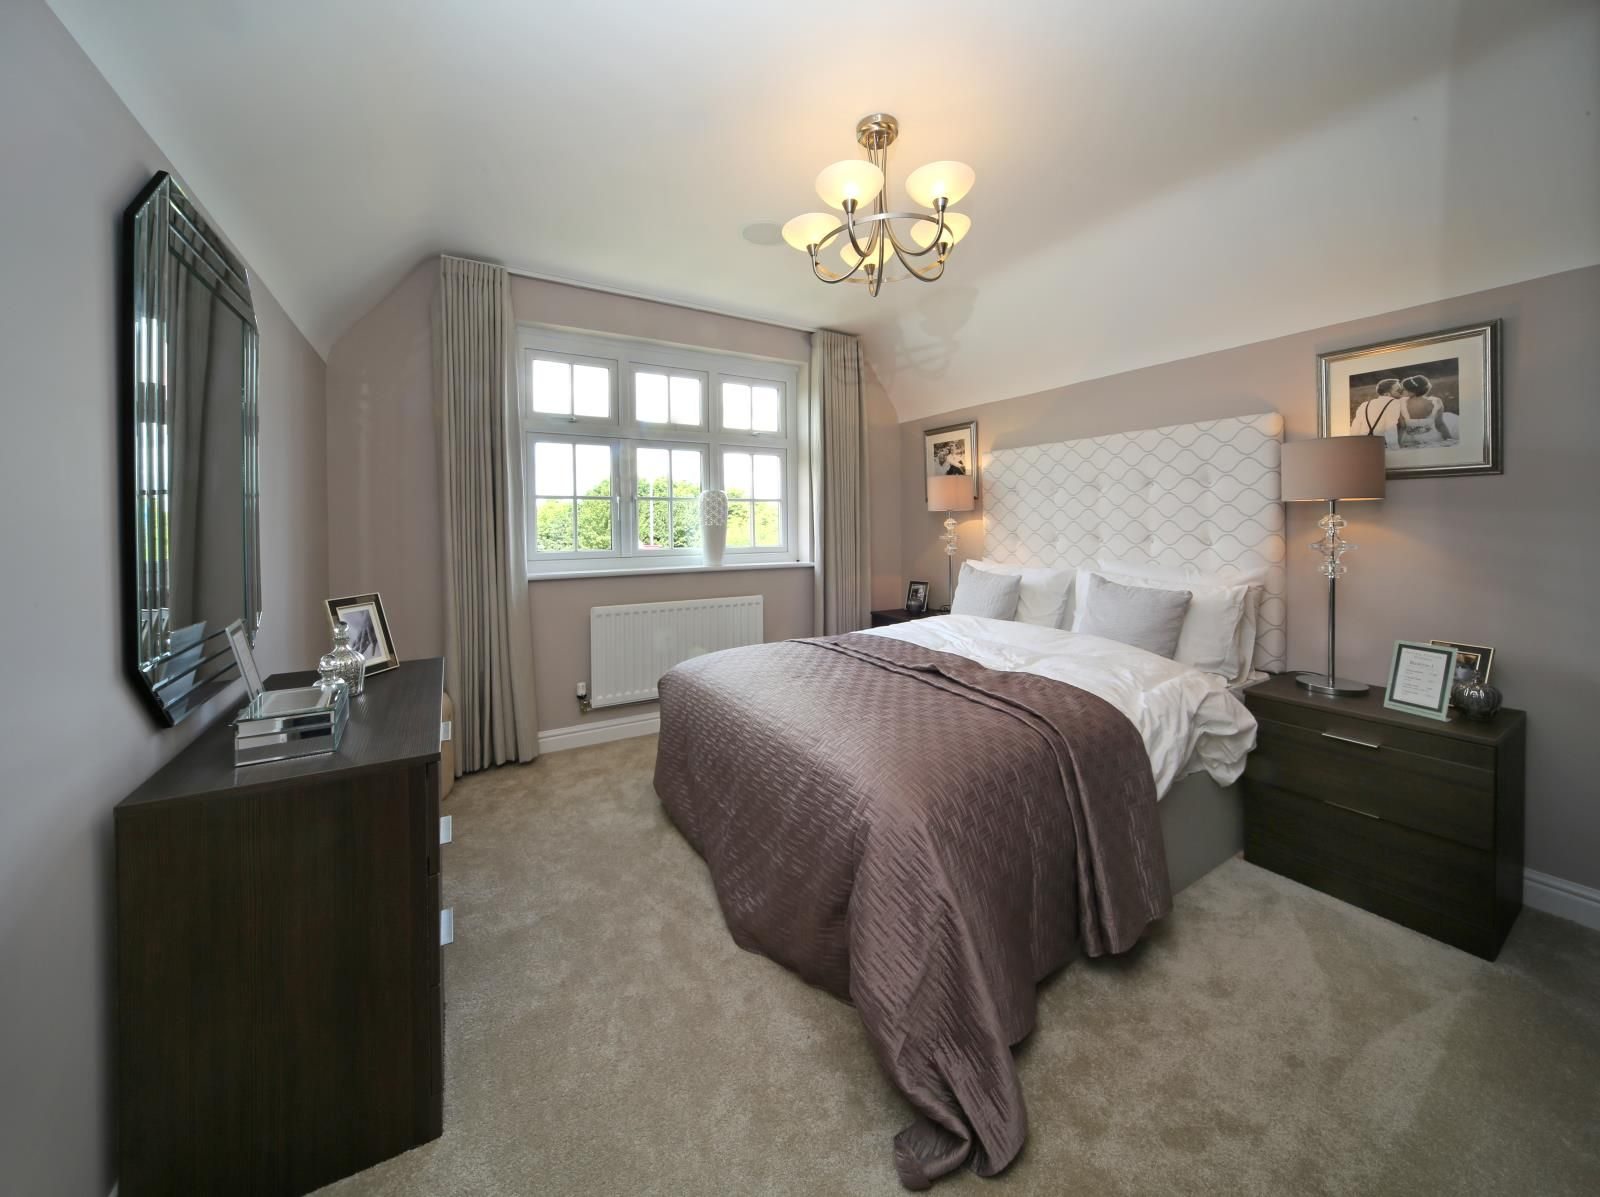 The Marlow Redrow Bedroom decor, Home, House